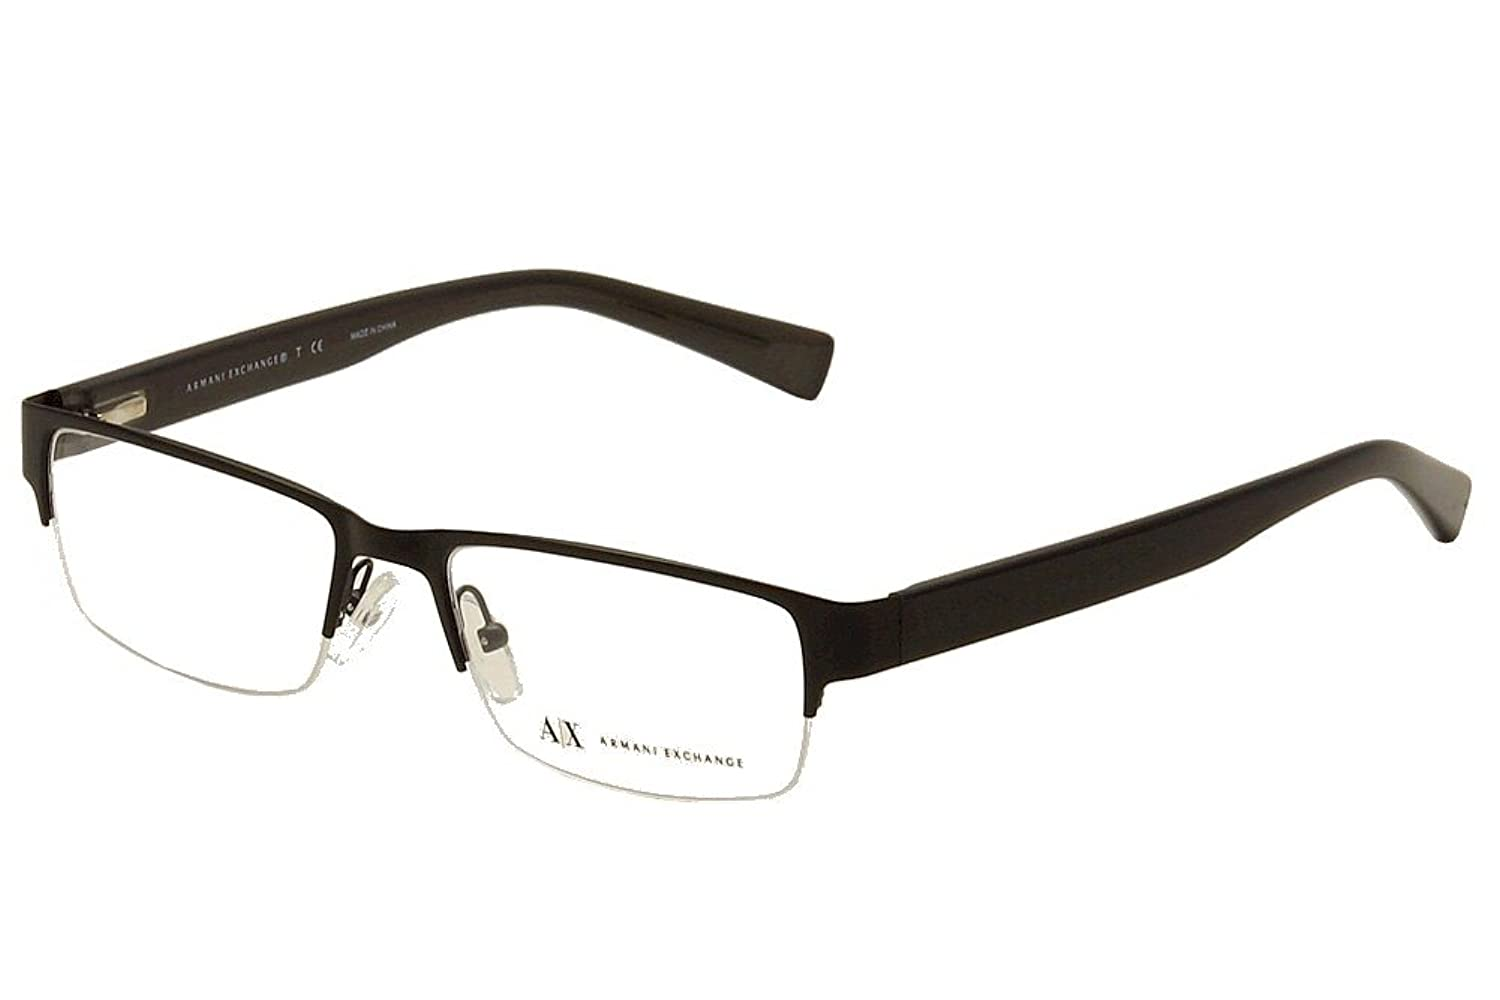 e346f01c292e Armani Exchange AX1015 is a Semi-Rimless frame for Men, which is made of  Metal & Plastic. Most metal frames are made out of Monel.